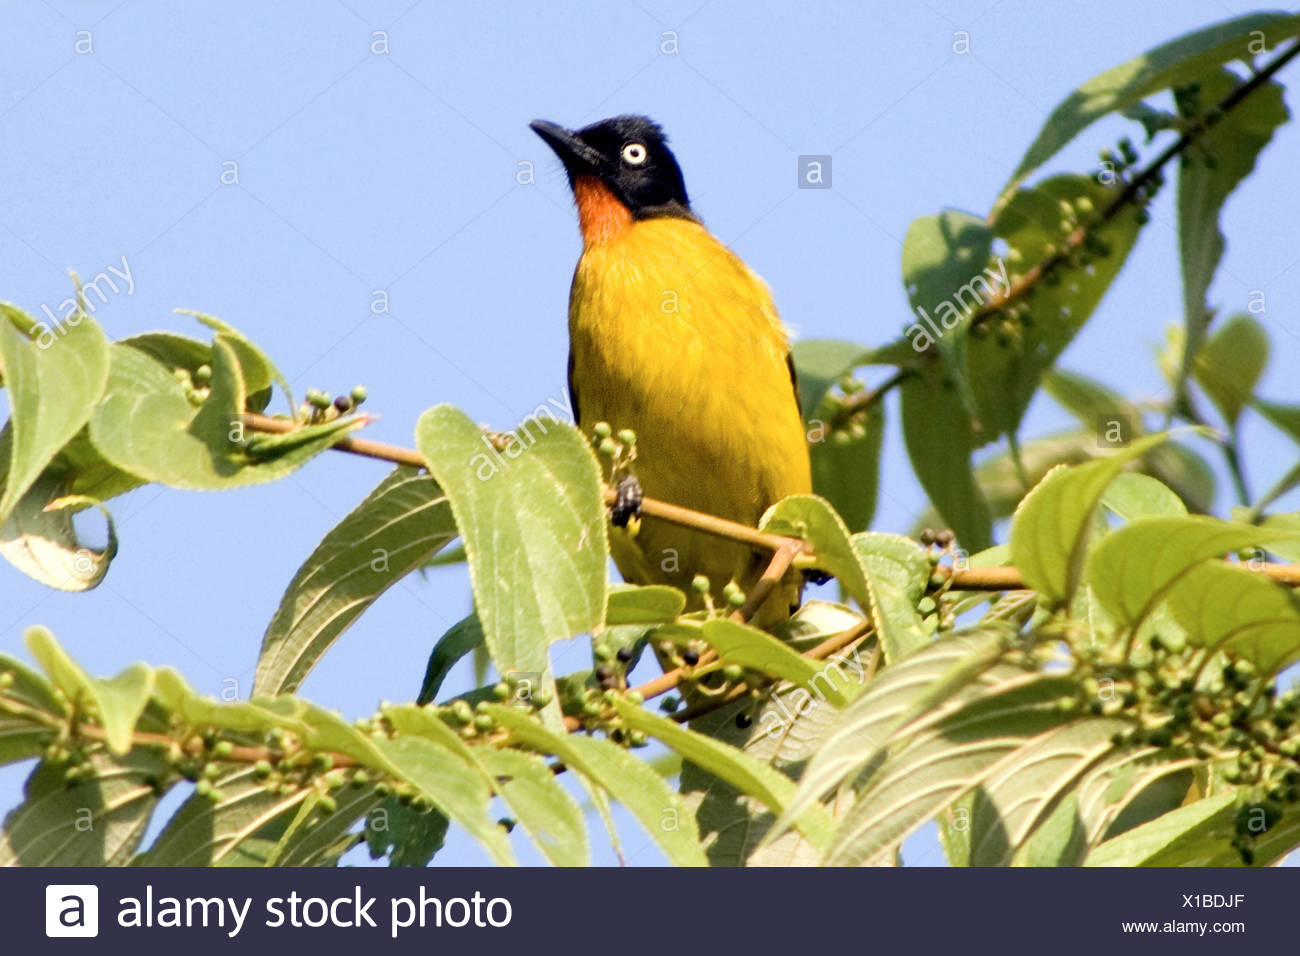 Black-crested bulbul, Pycnonotus flaviventris  - family, Pycnonotidae. Medium-sized passerine songbirds.Goa's state bird - Stock Image